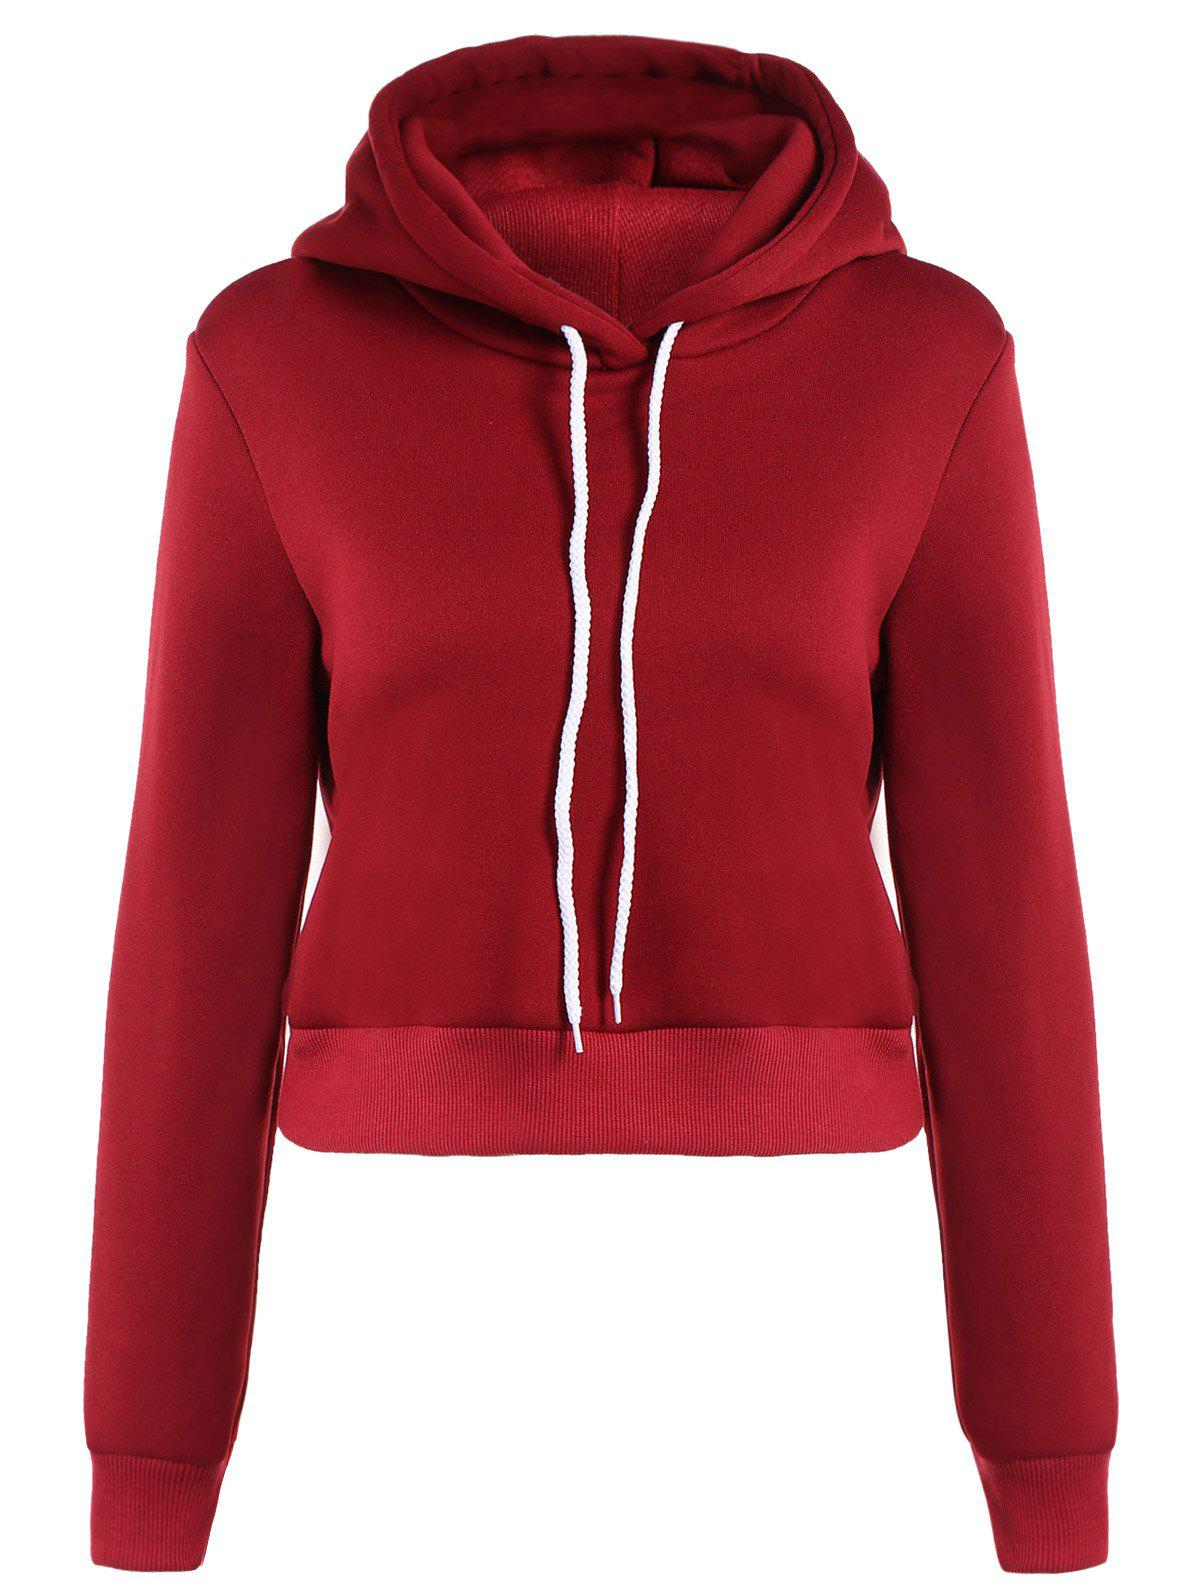 Long Sleeve Drawstring Thicken Hoodie - DEEP RED 3XL